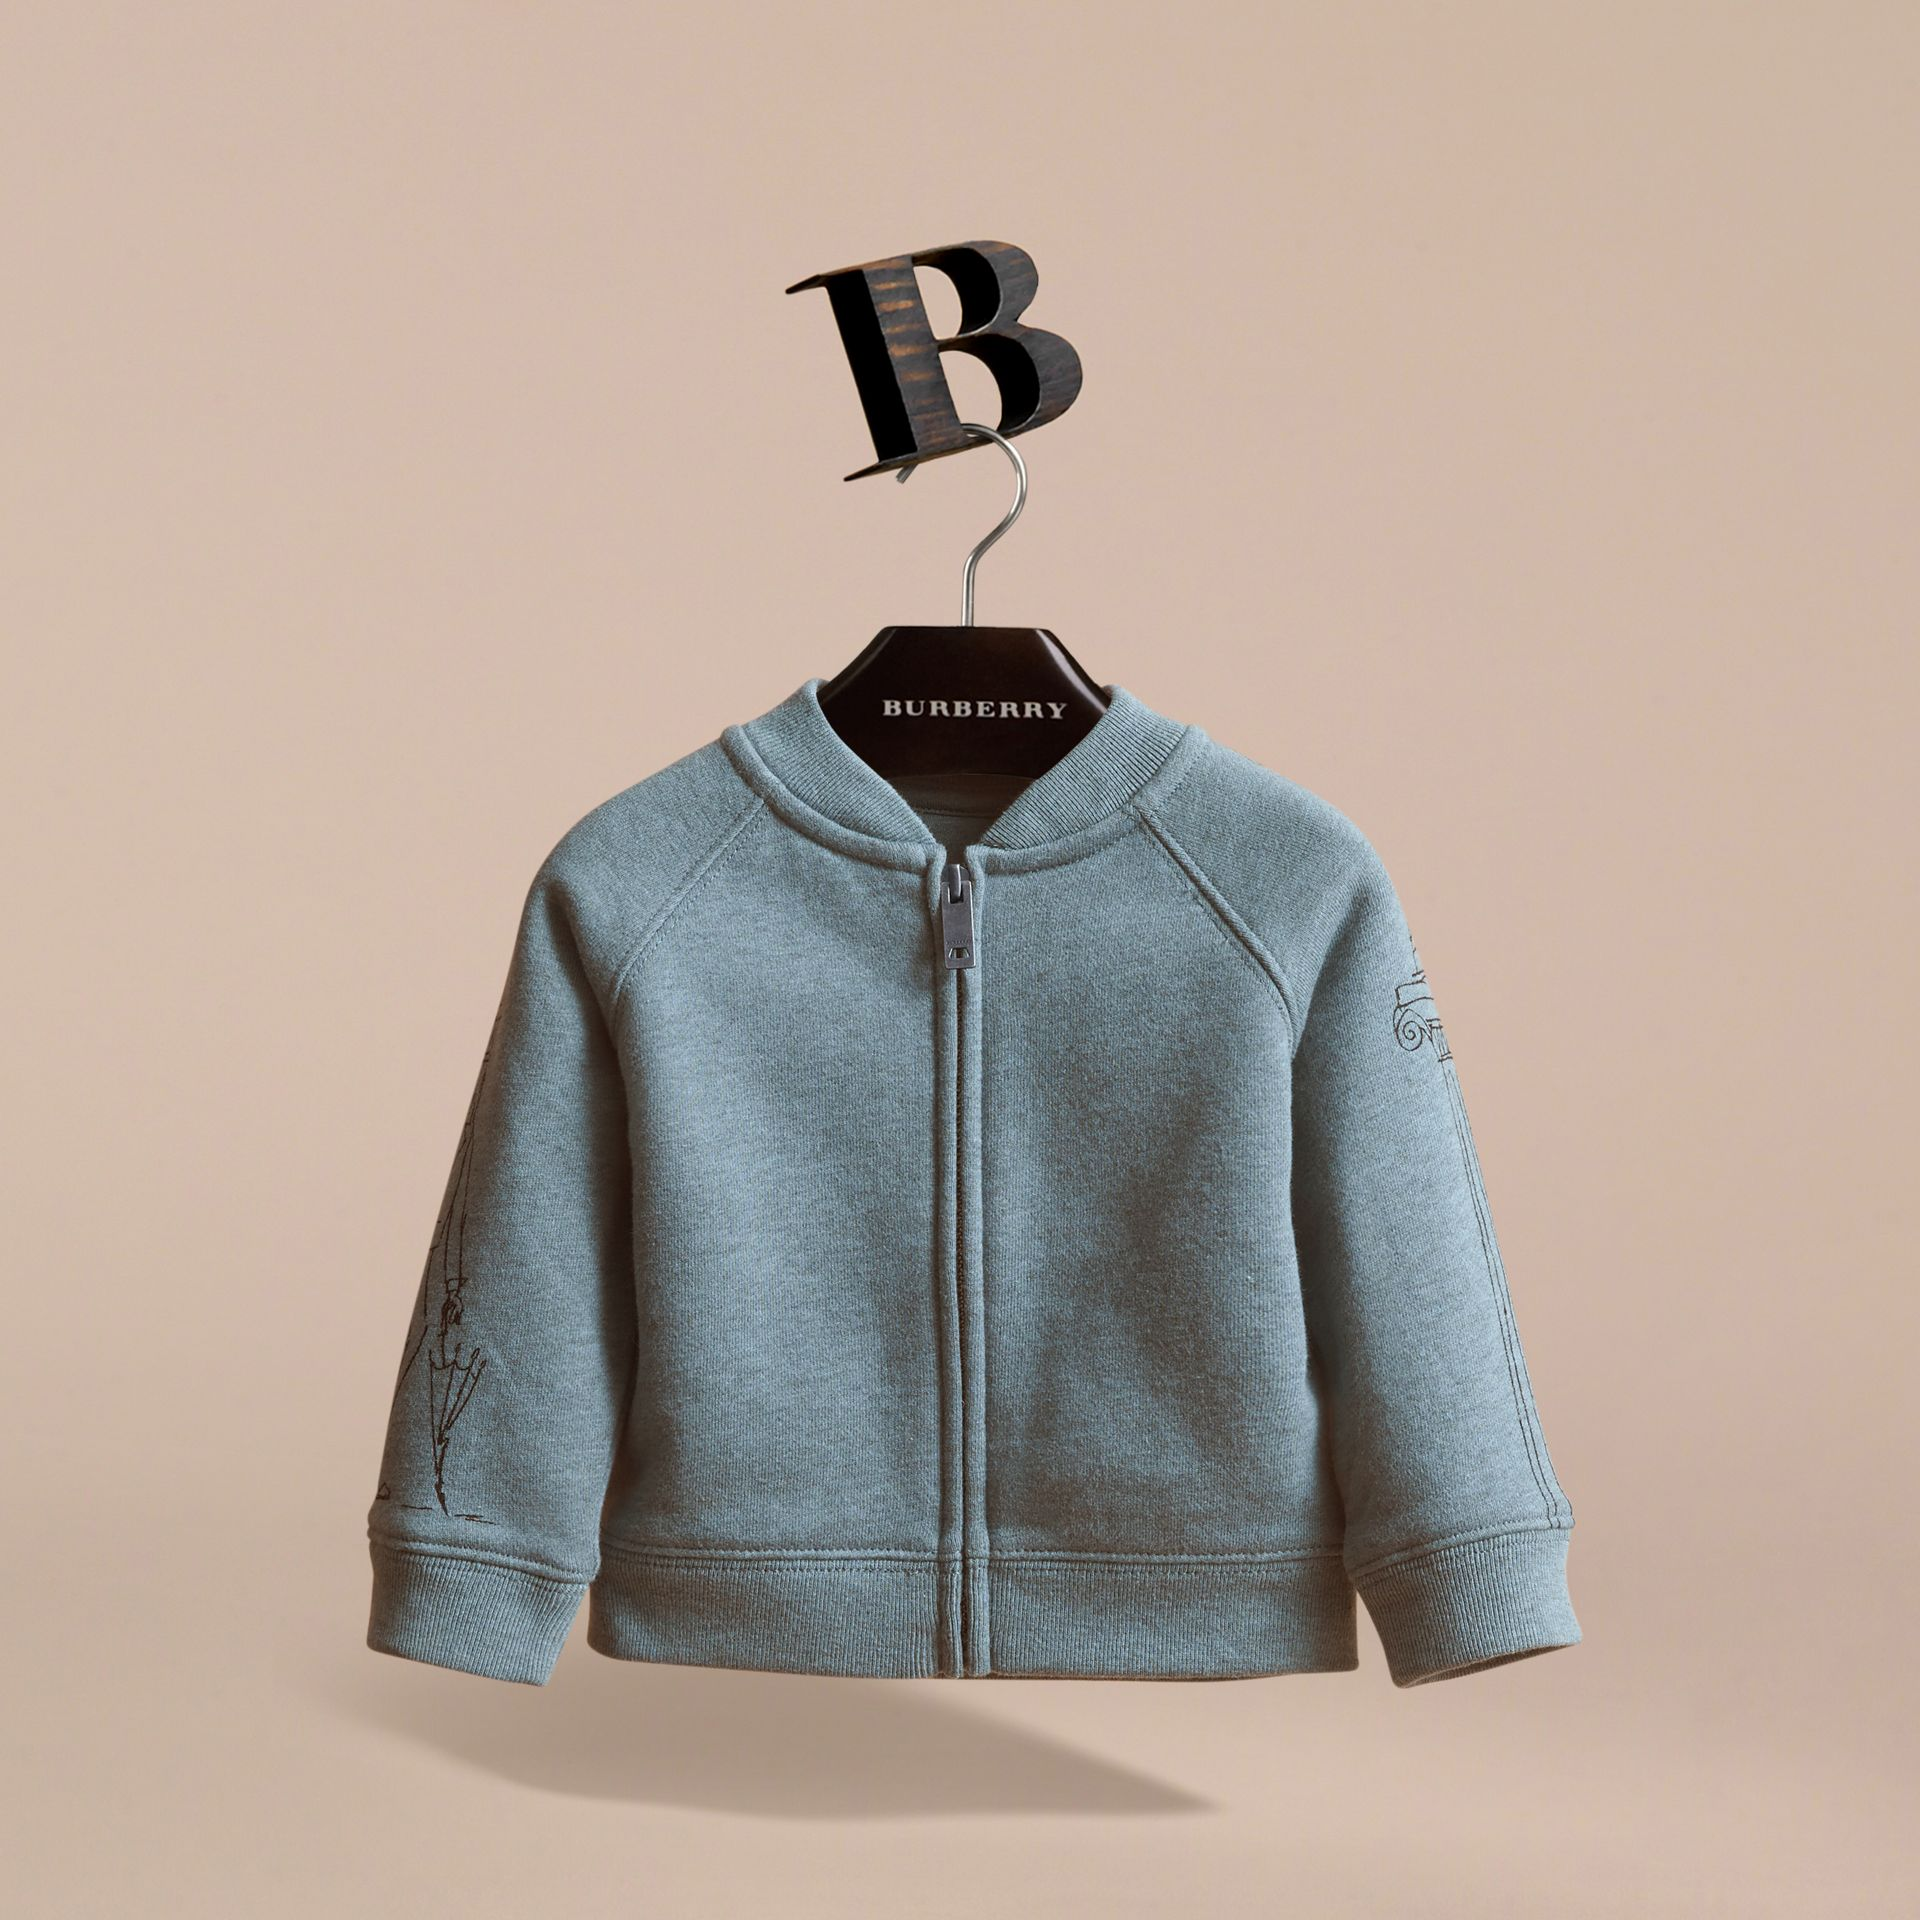 London Icons Print Cotton Zip-front Sweatshirt in Dusty Blue - Children | Burberry - gallery image 3